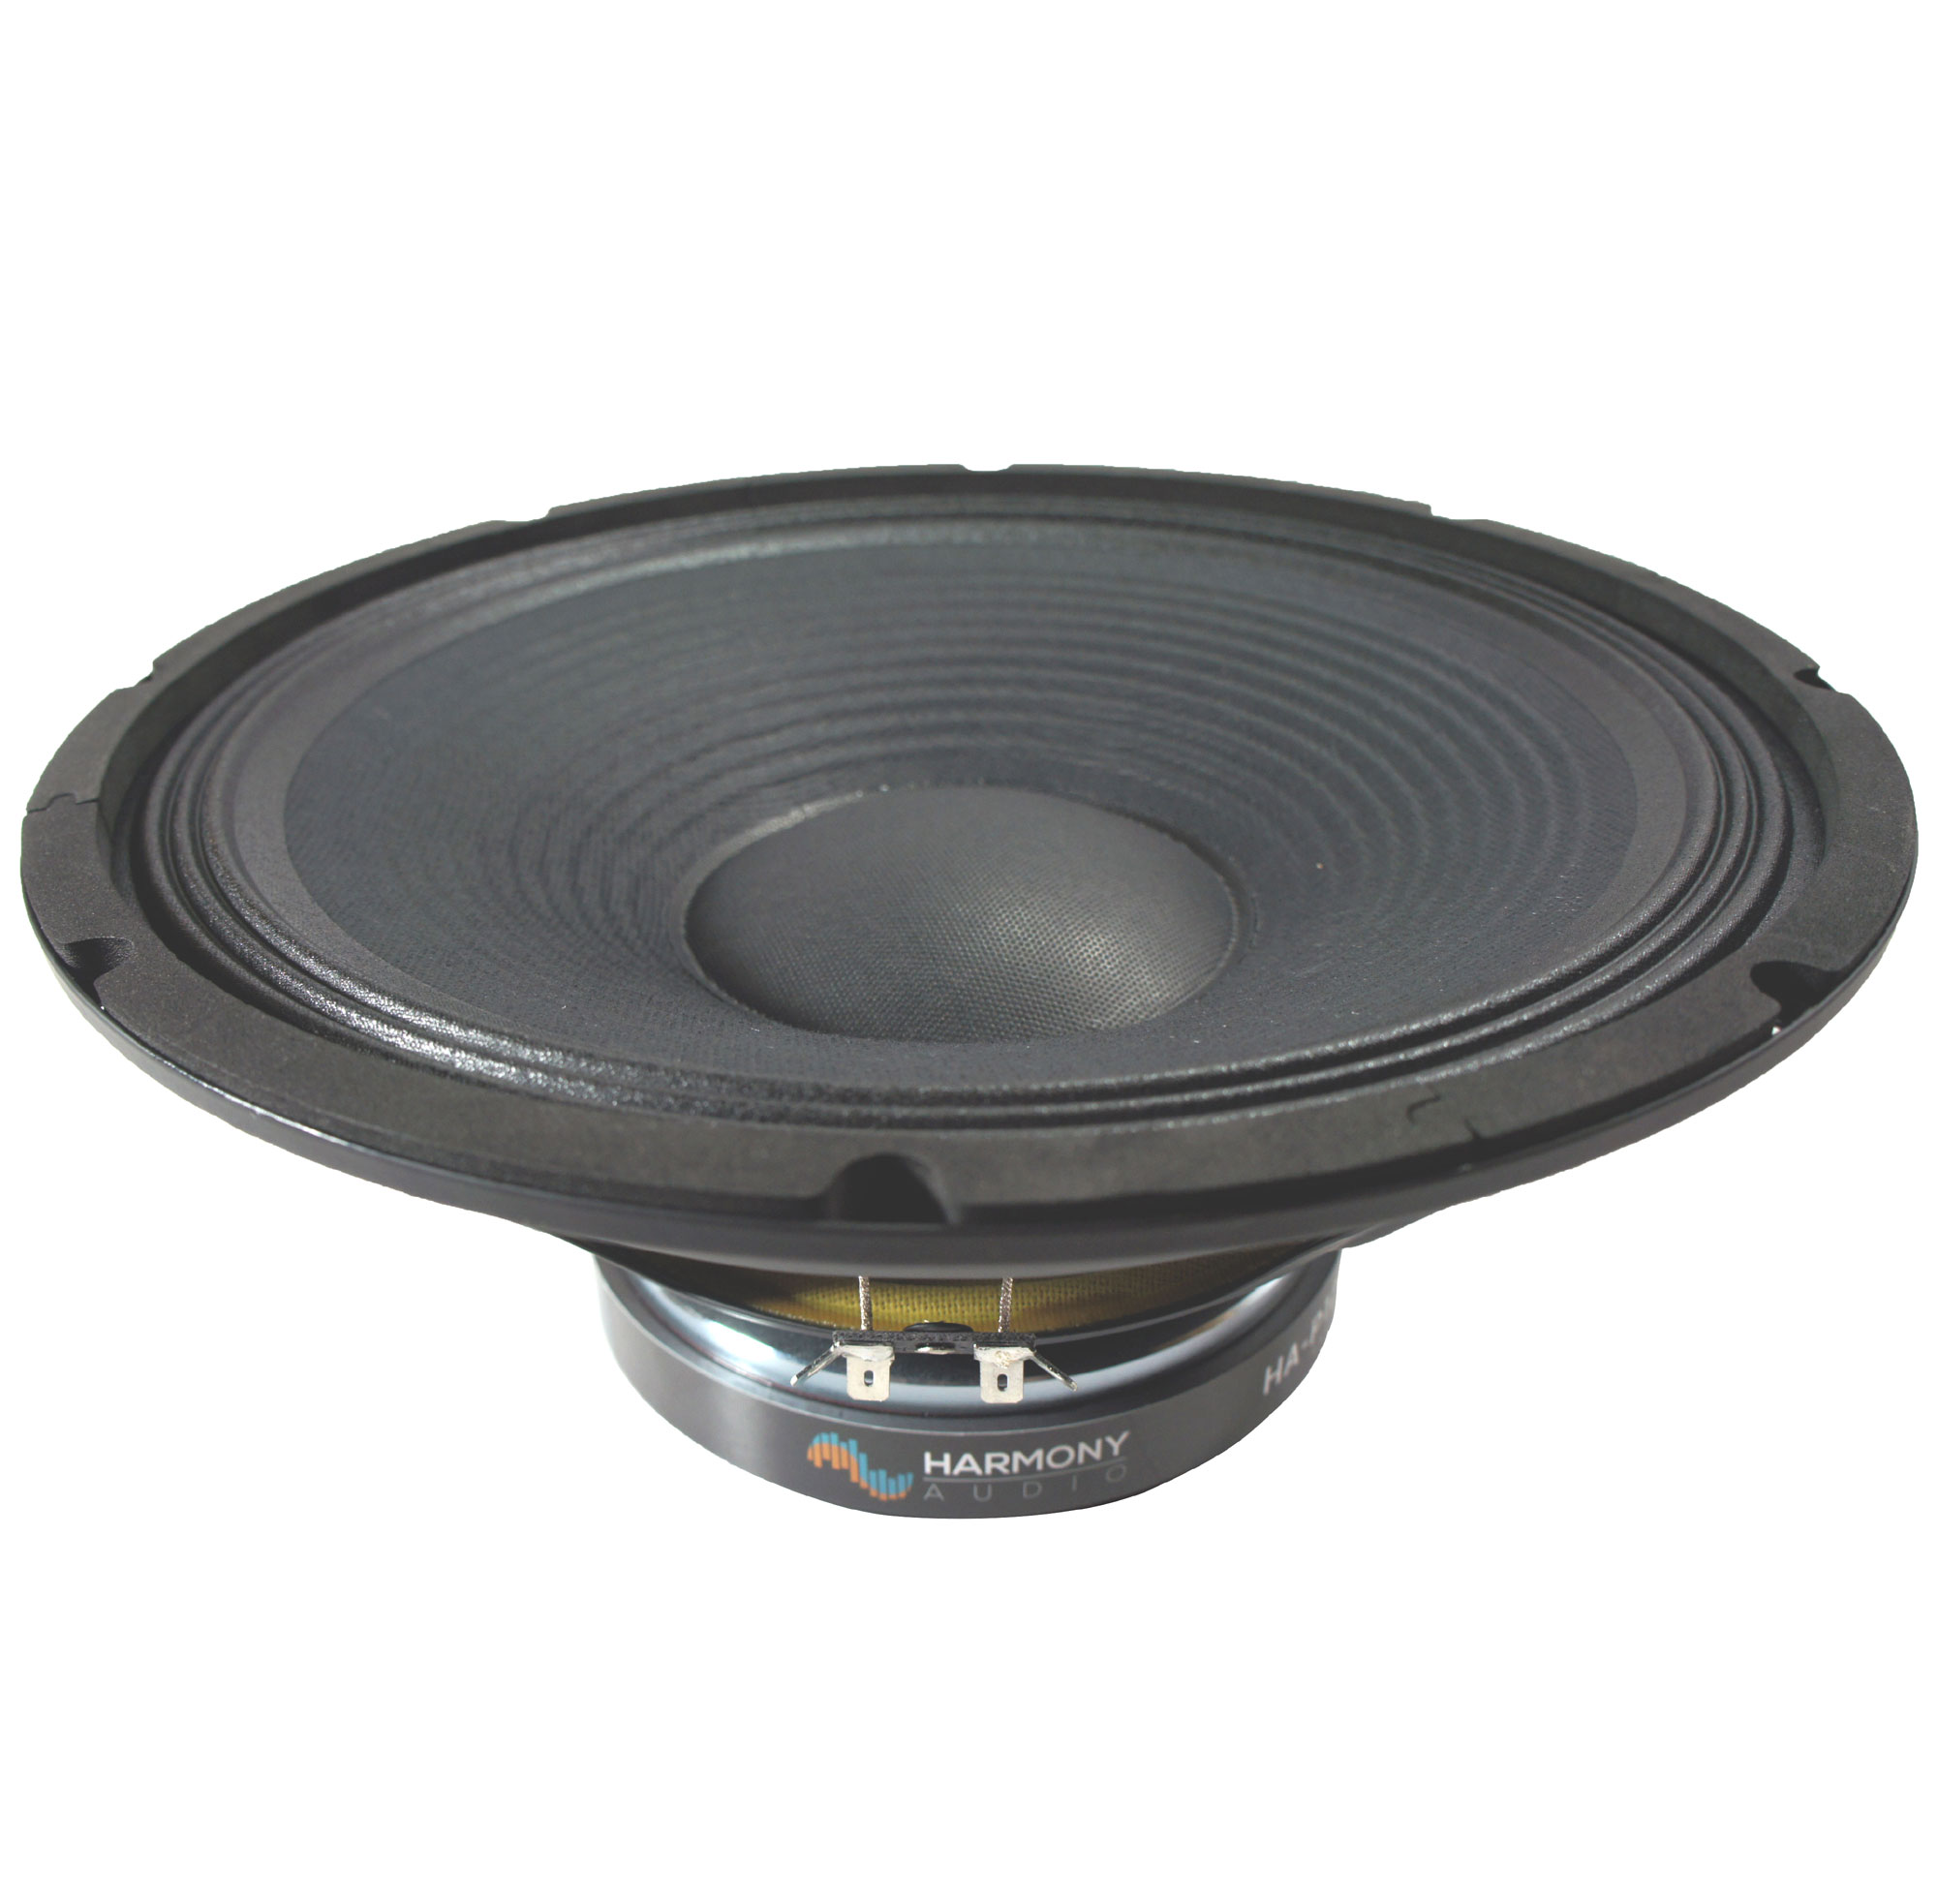 """Harmony HA-P12WS8 Replacement 12"""" PA Speaker 8 Ohm Woofer for JBL PRX412M"""